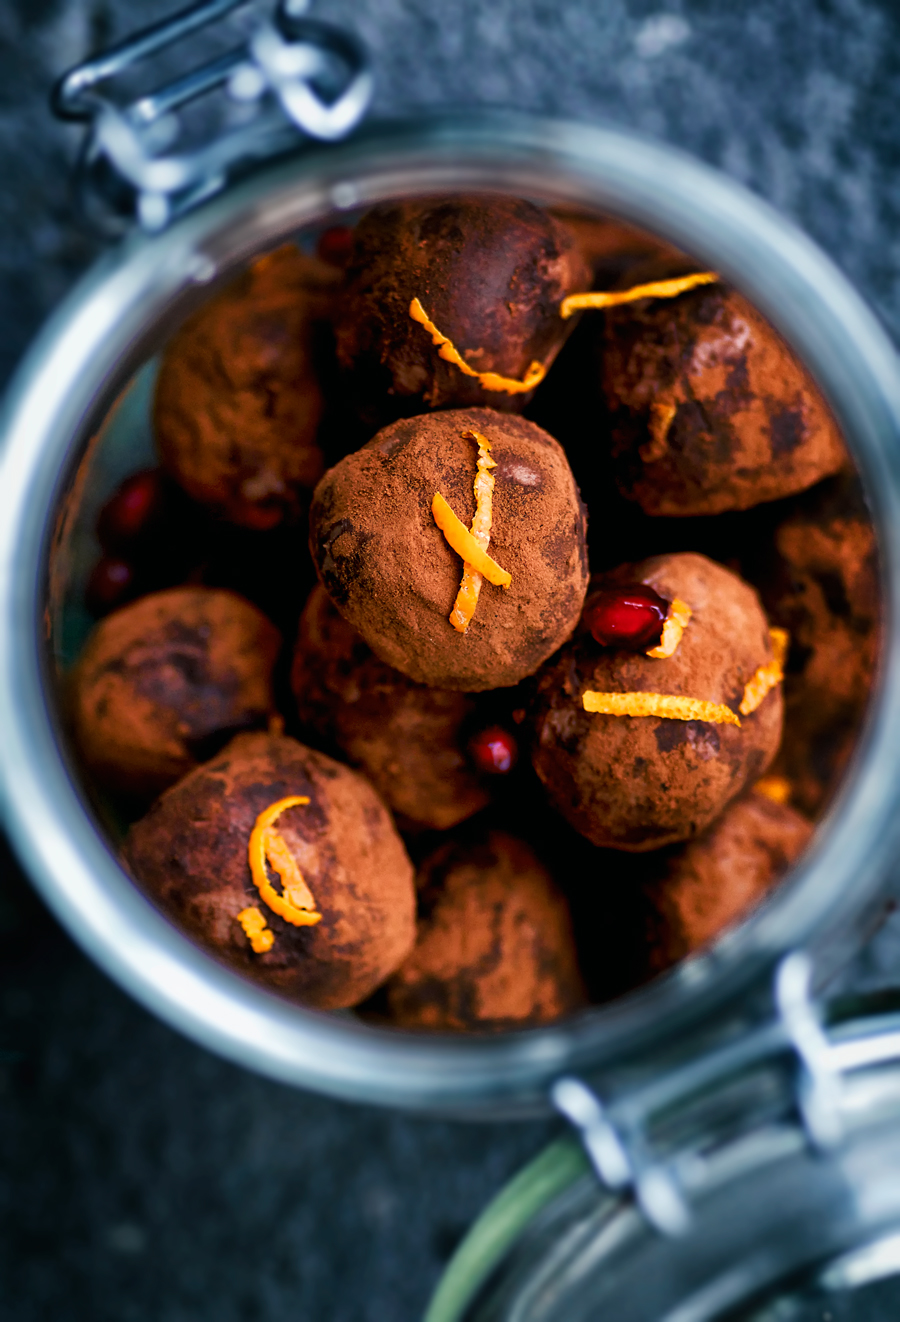 Vegan chocolate truffles with bright winter flavours of ginger, orange and pomegranate - make these as a food gift for Christmas or as a treat for yourself. These are so easy and you can't beat the taste, even though they're made with coconut cream instead of dairy.